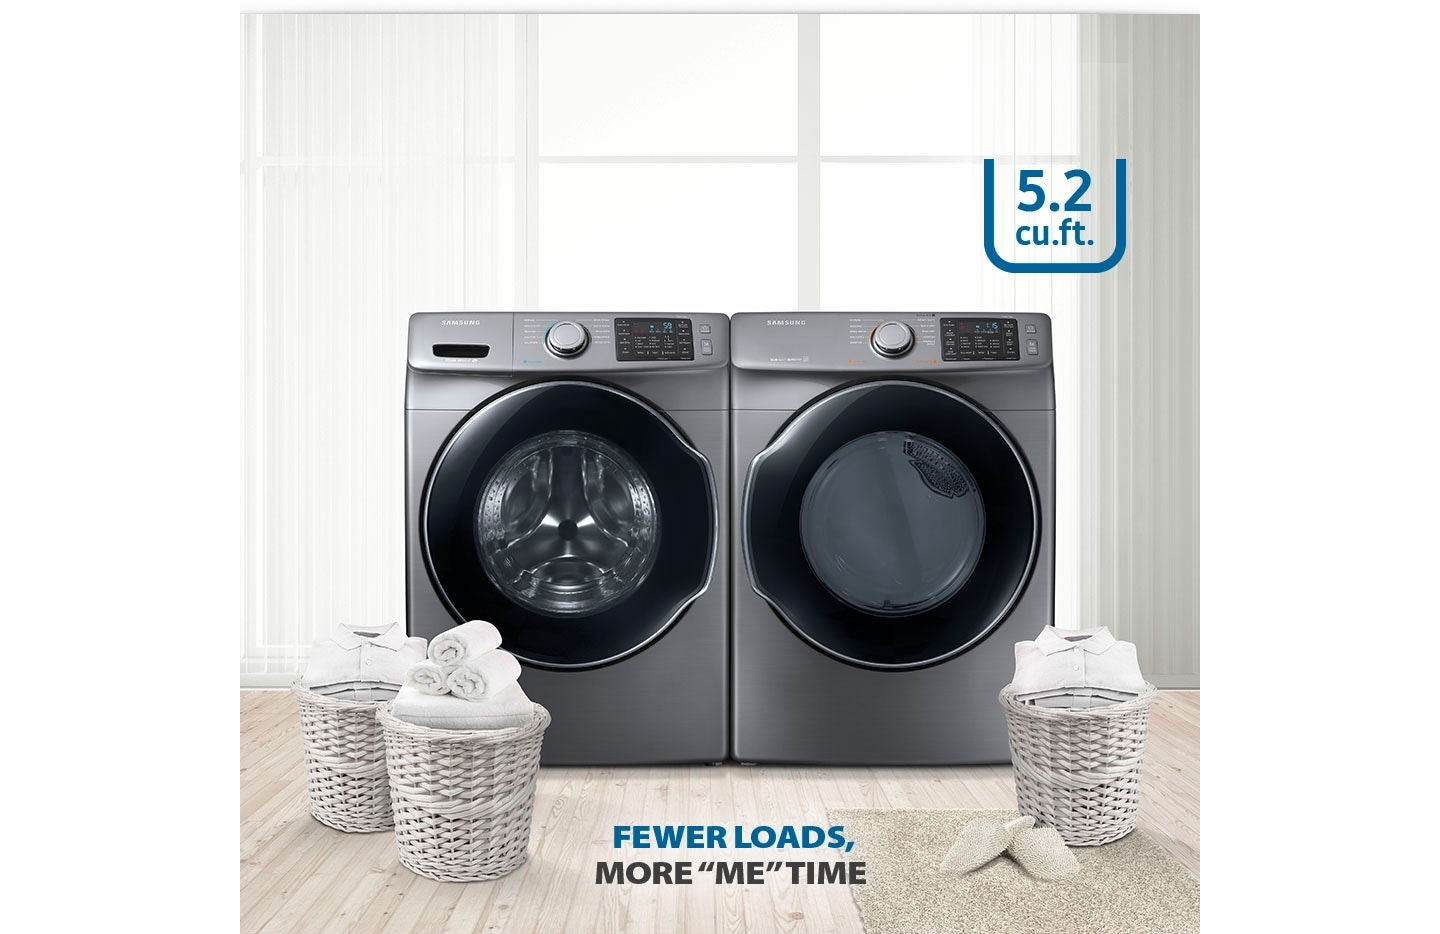 benefit coupon feature waxyx pedestal coupons lyw dryer bottom rsi denver washers lifestylebssaddwashmodelssidebyside grill ctt rebates tech rodizio samsung pedestals washer life and